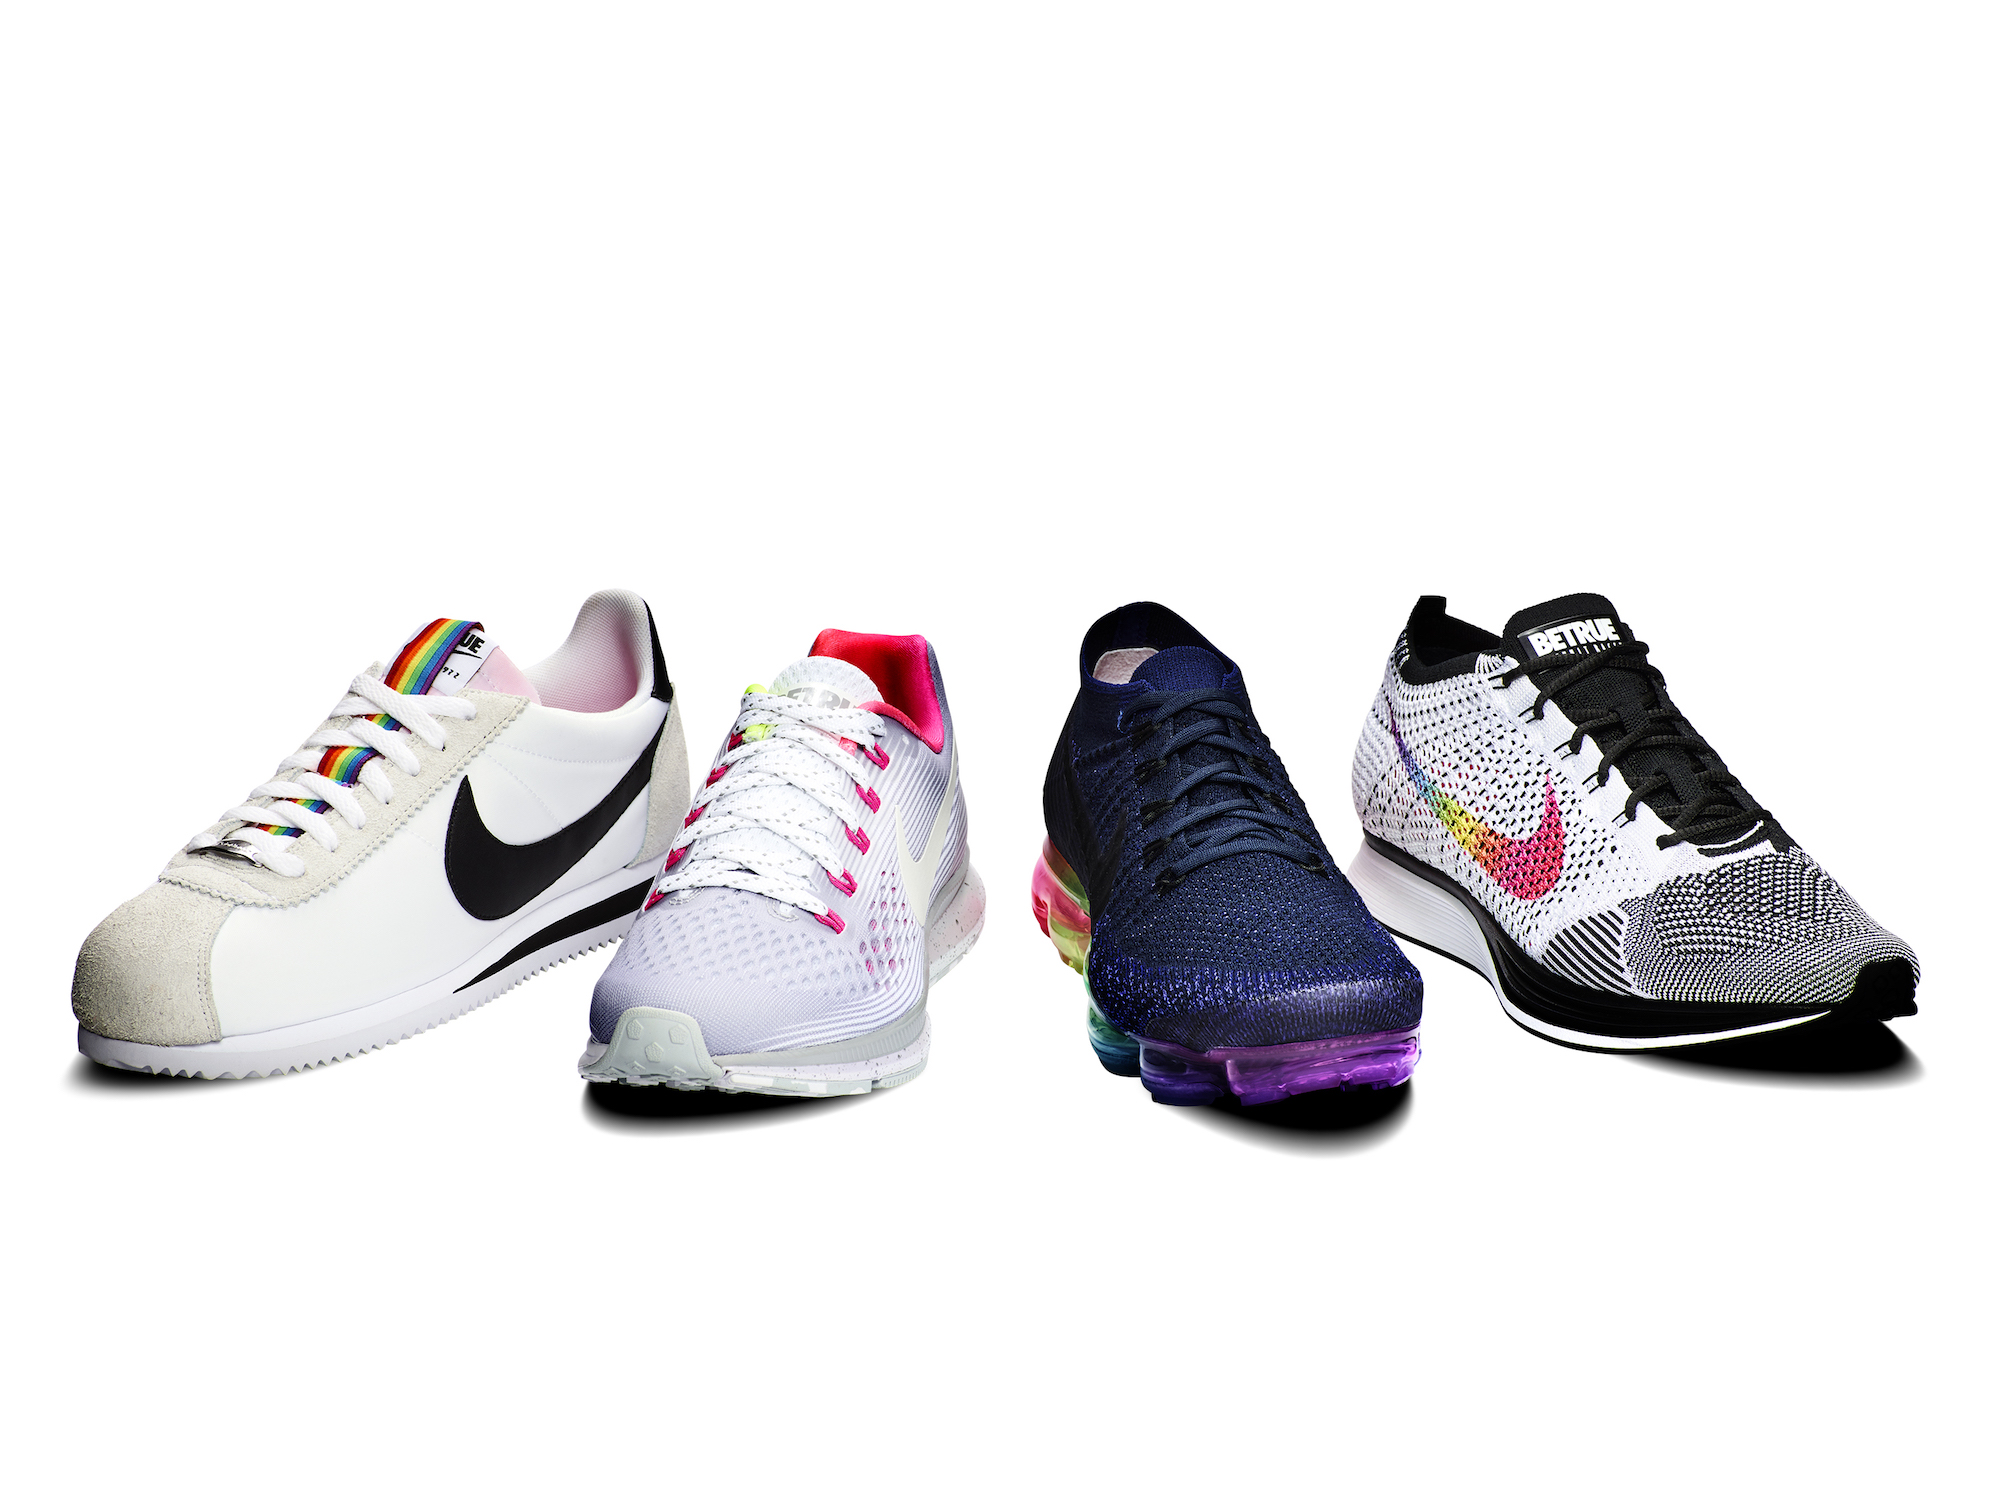 nike BETRUE 2017 collection